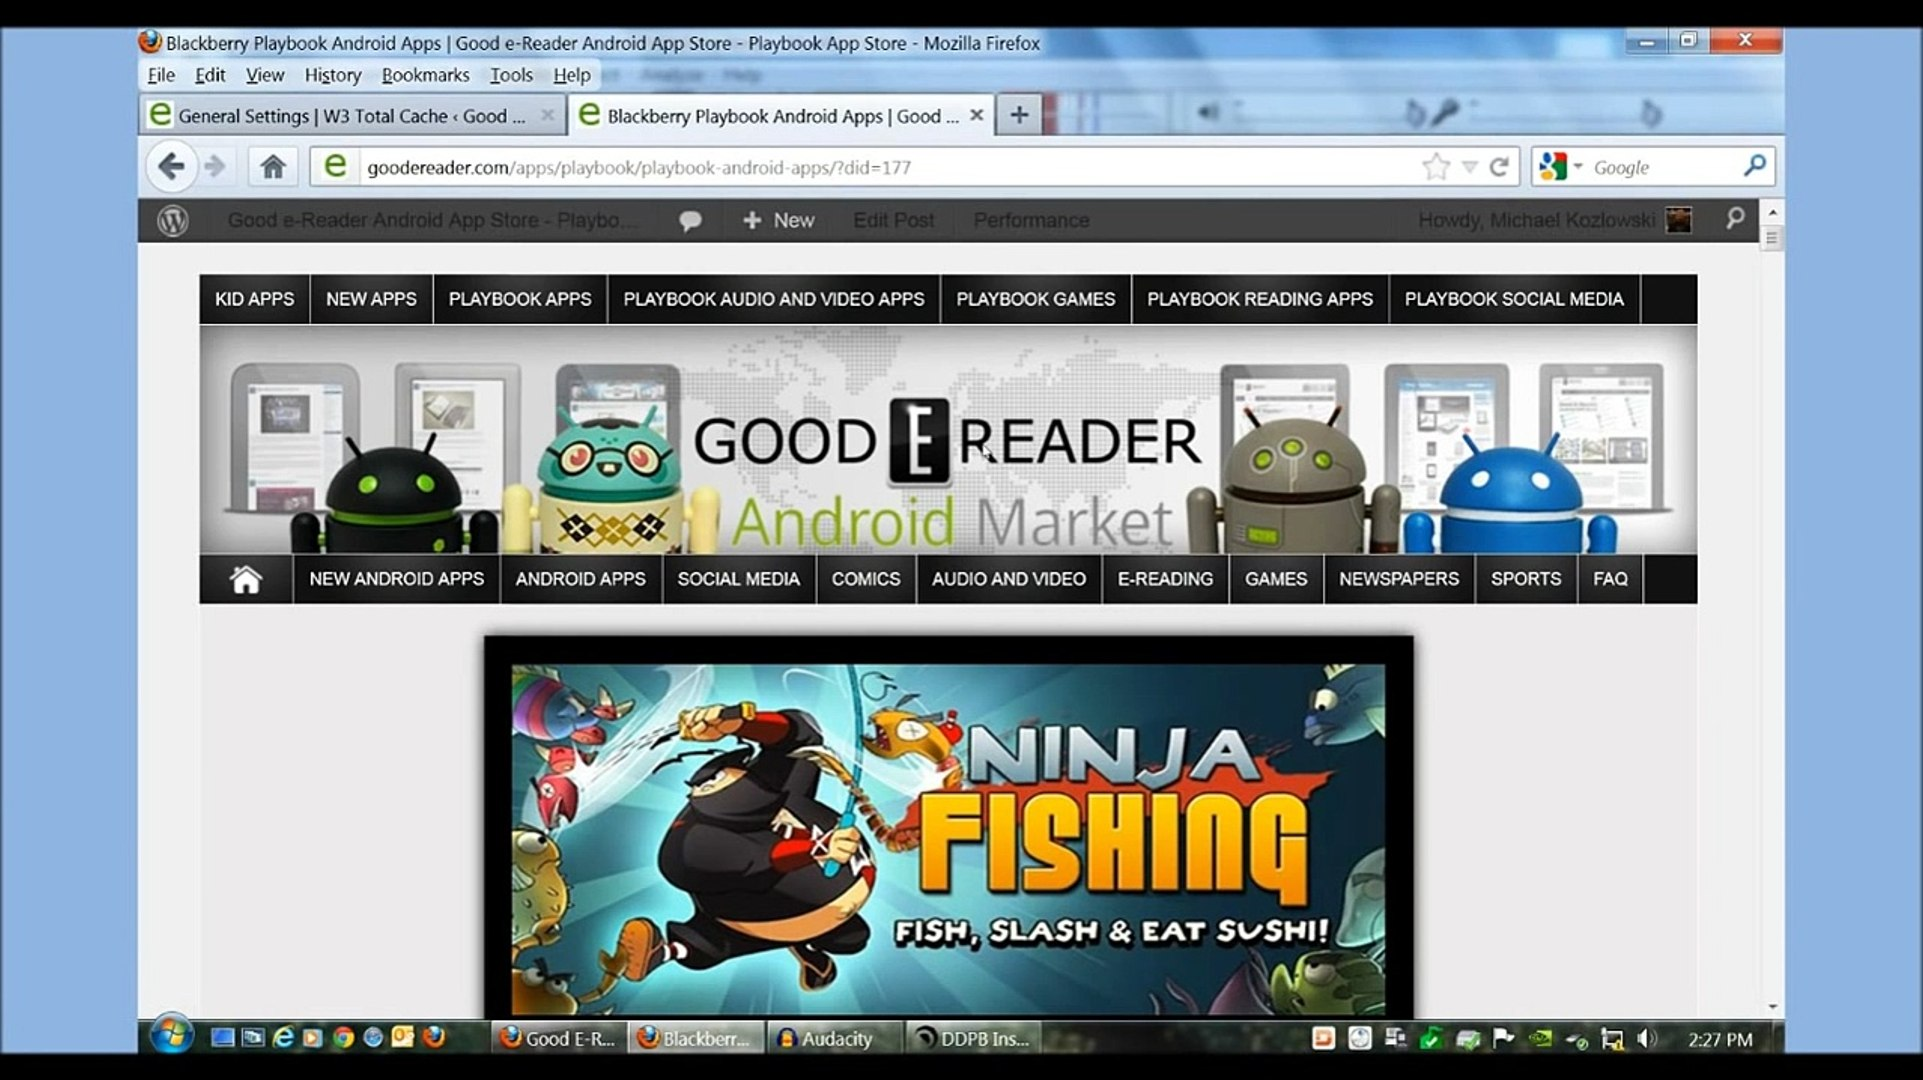 How to Install Android Apps on the Blackberry Playbook (Updated)